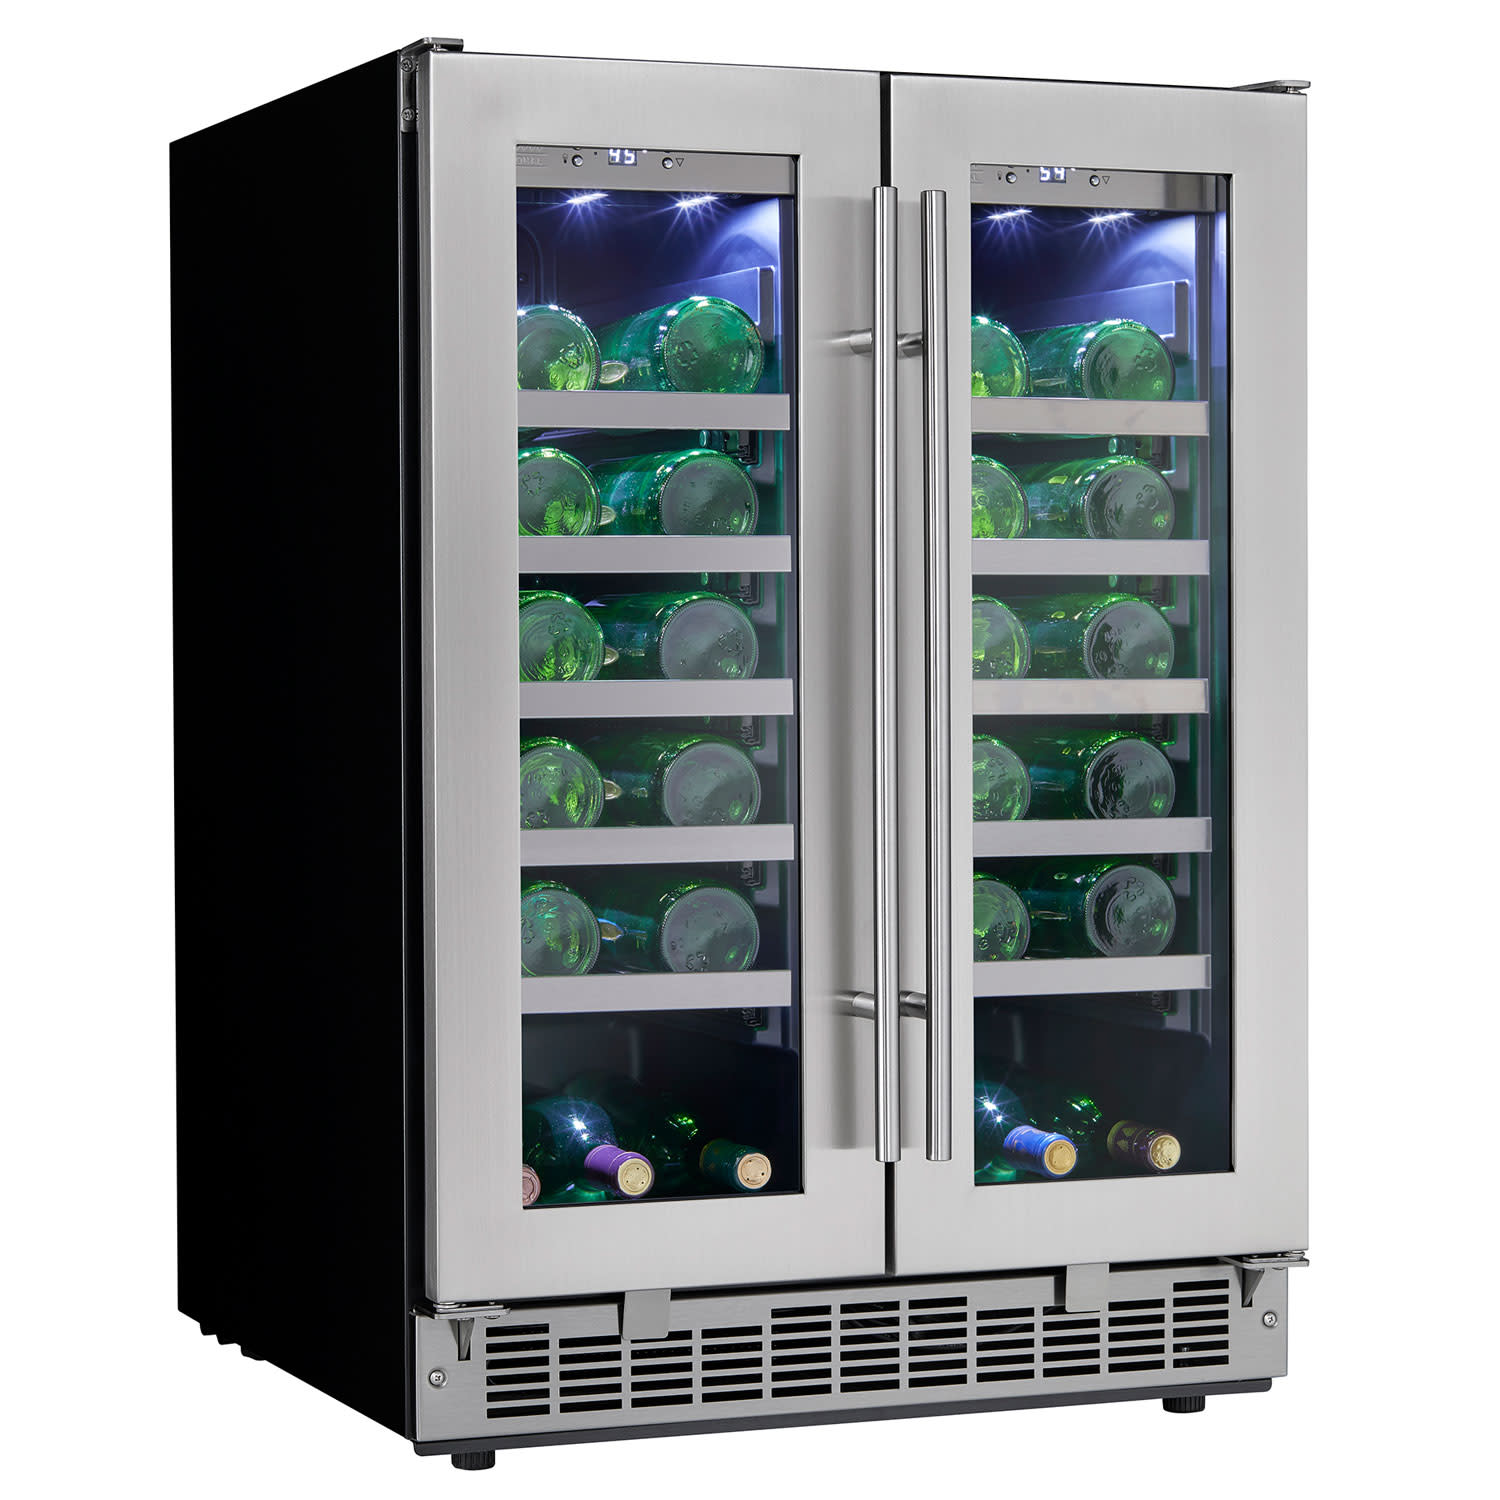 Danby DWC047D1 24 Inch Wide 42 Bottle Capacity Built-In Wine Cooler with Dual Te